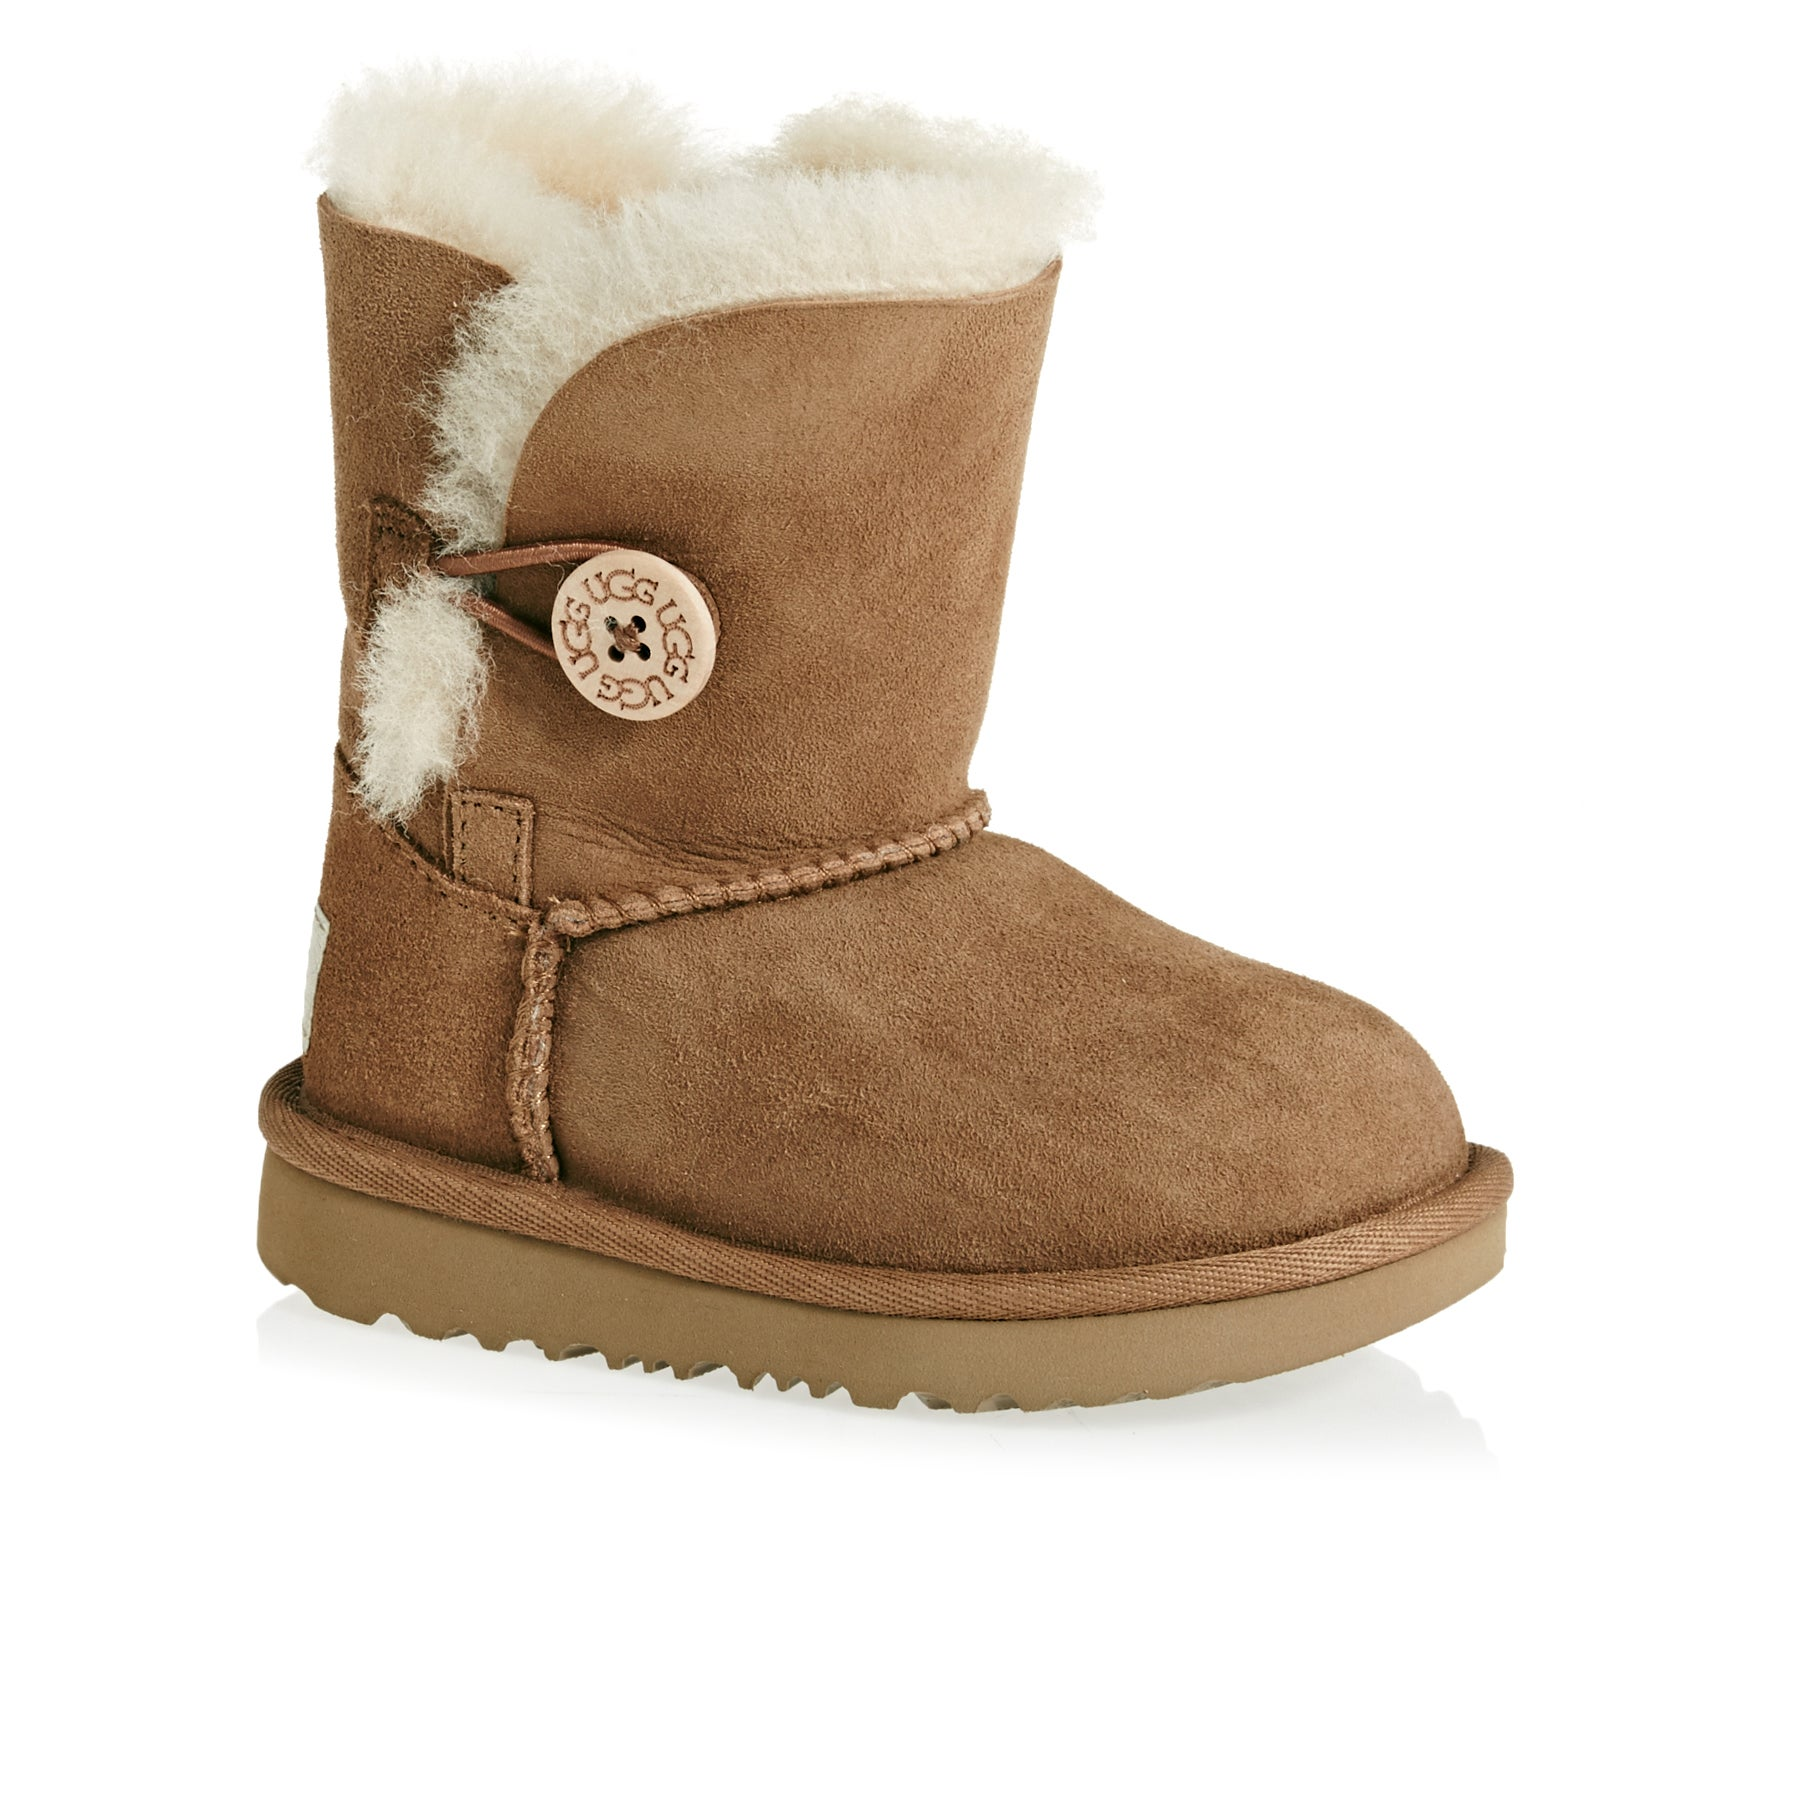 1595a92f388 UGG Bailey Button Ii Kids Boots available from Surfdome